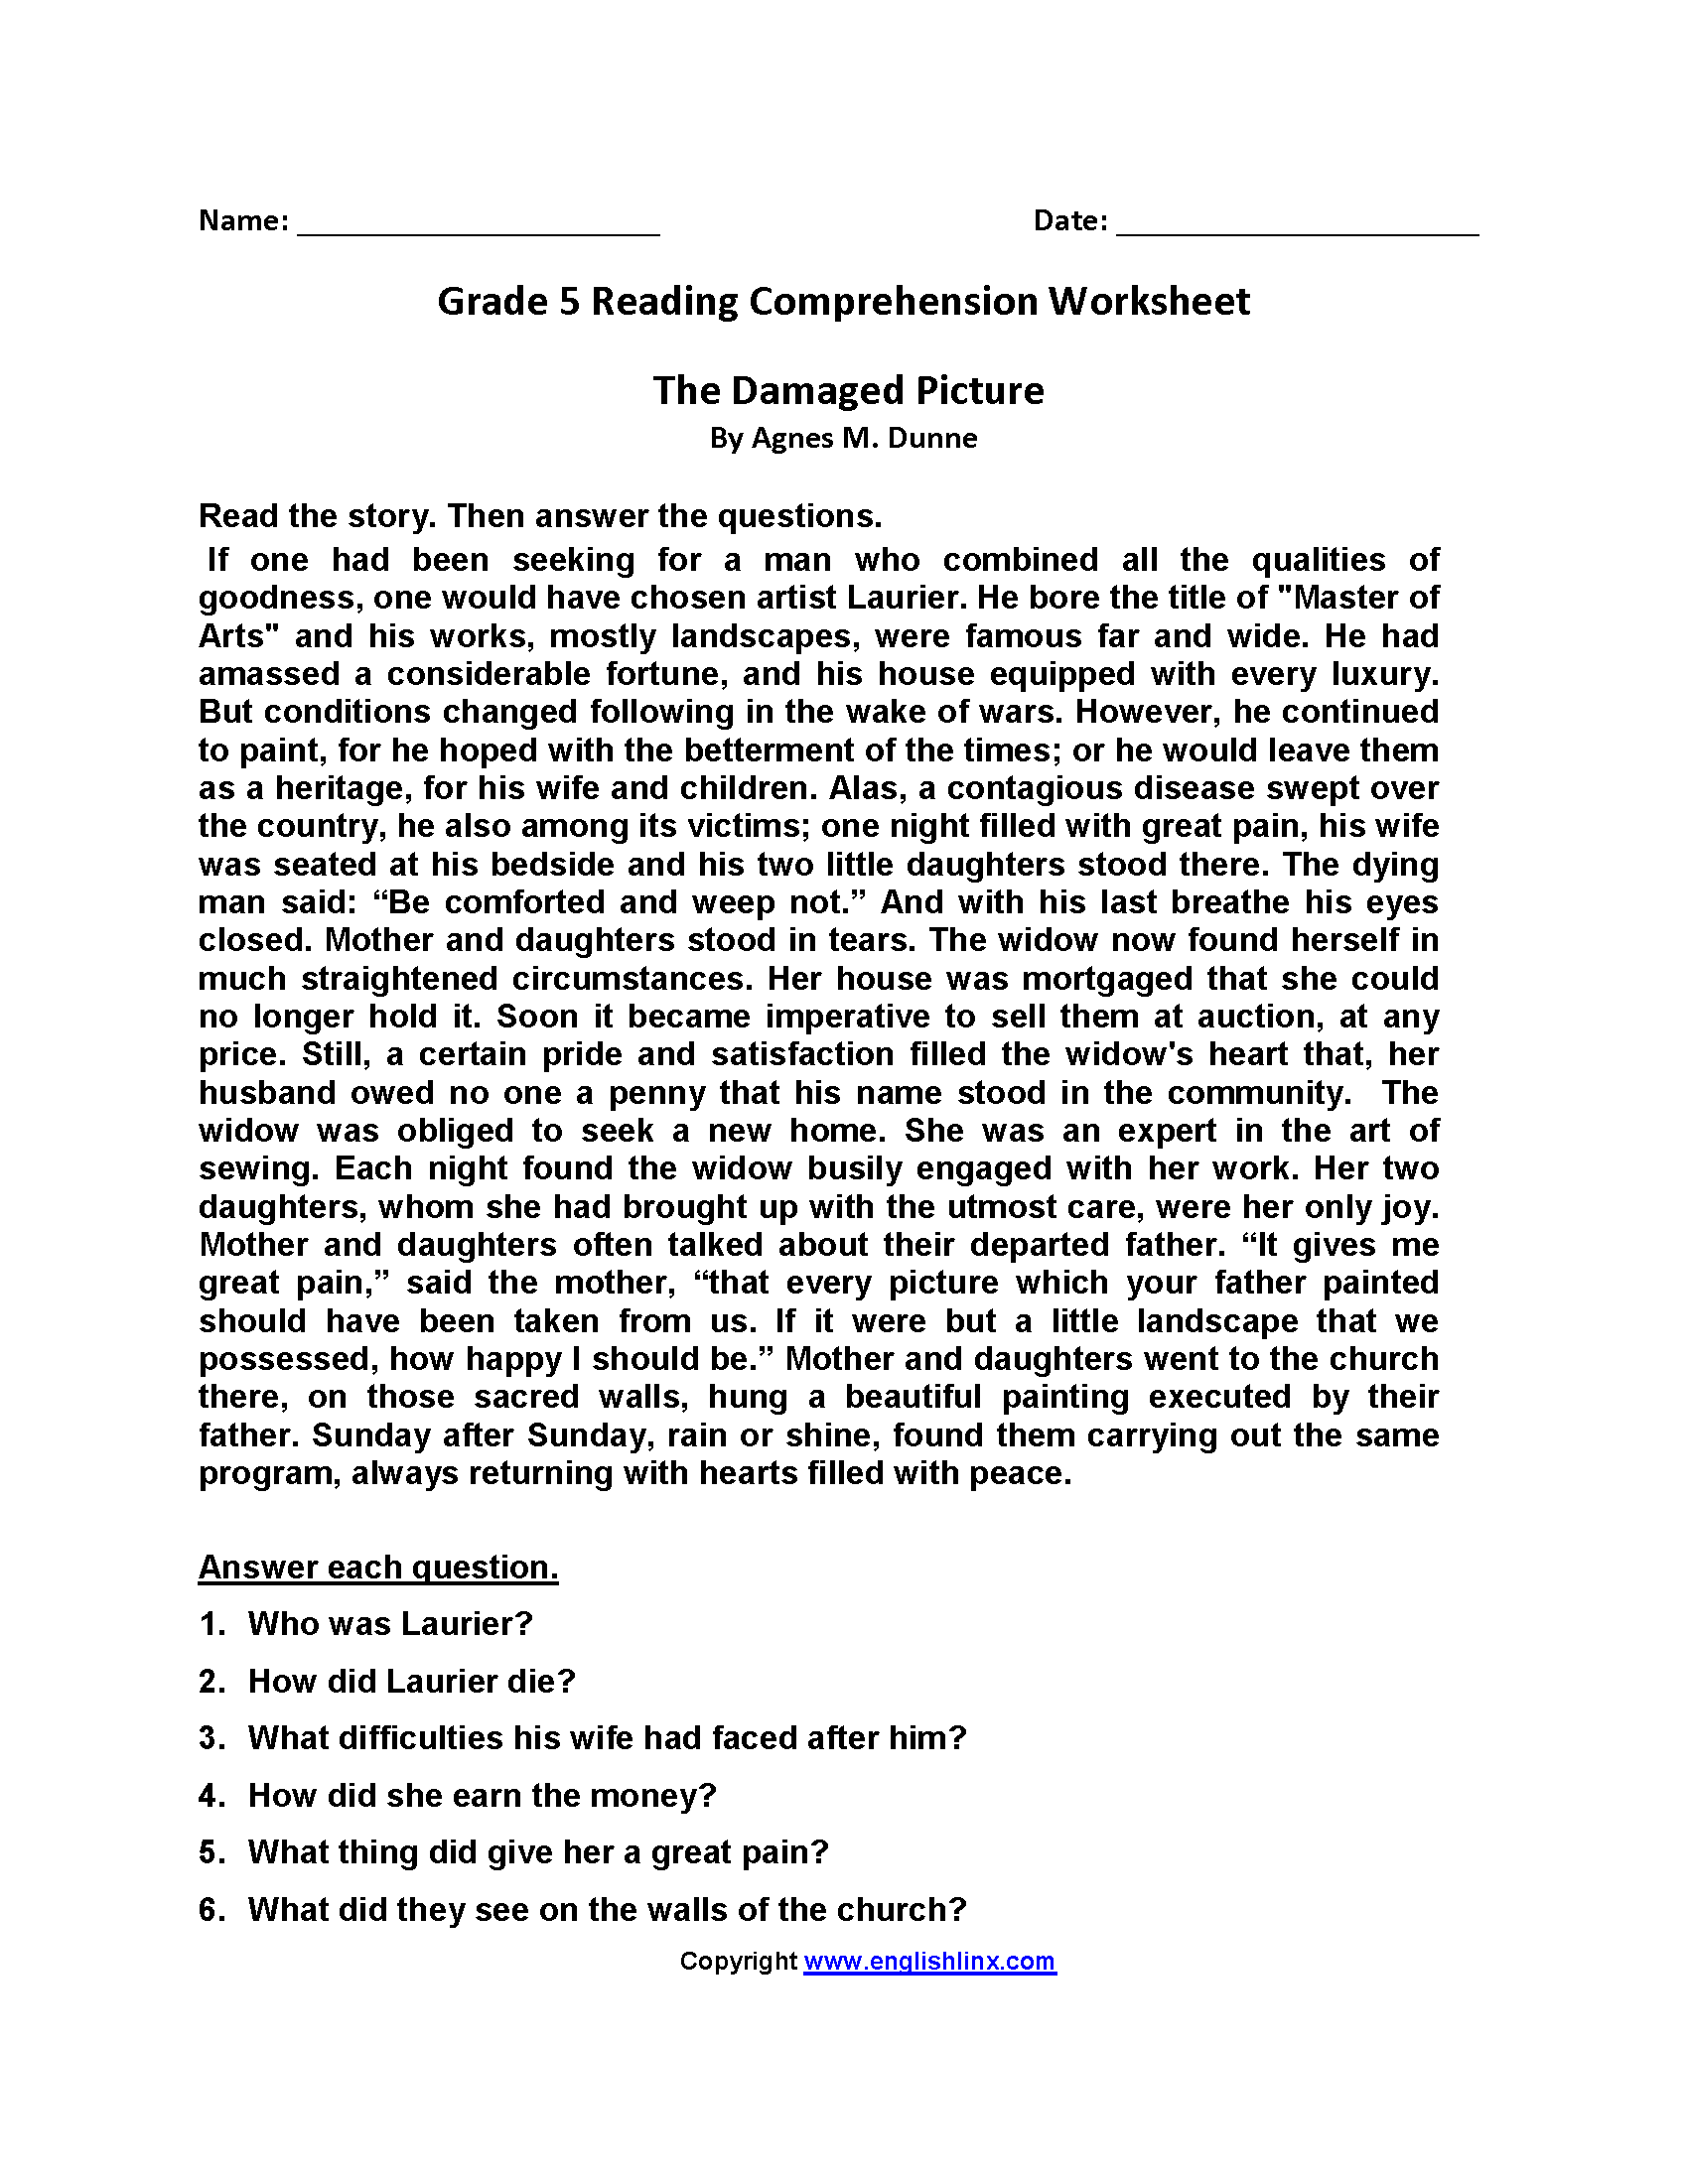 Damaged Picture Fifth Grade Reading Worksheets